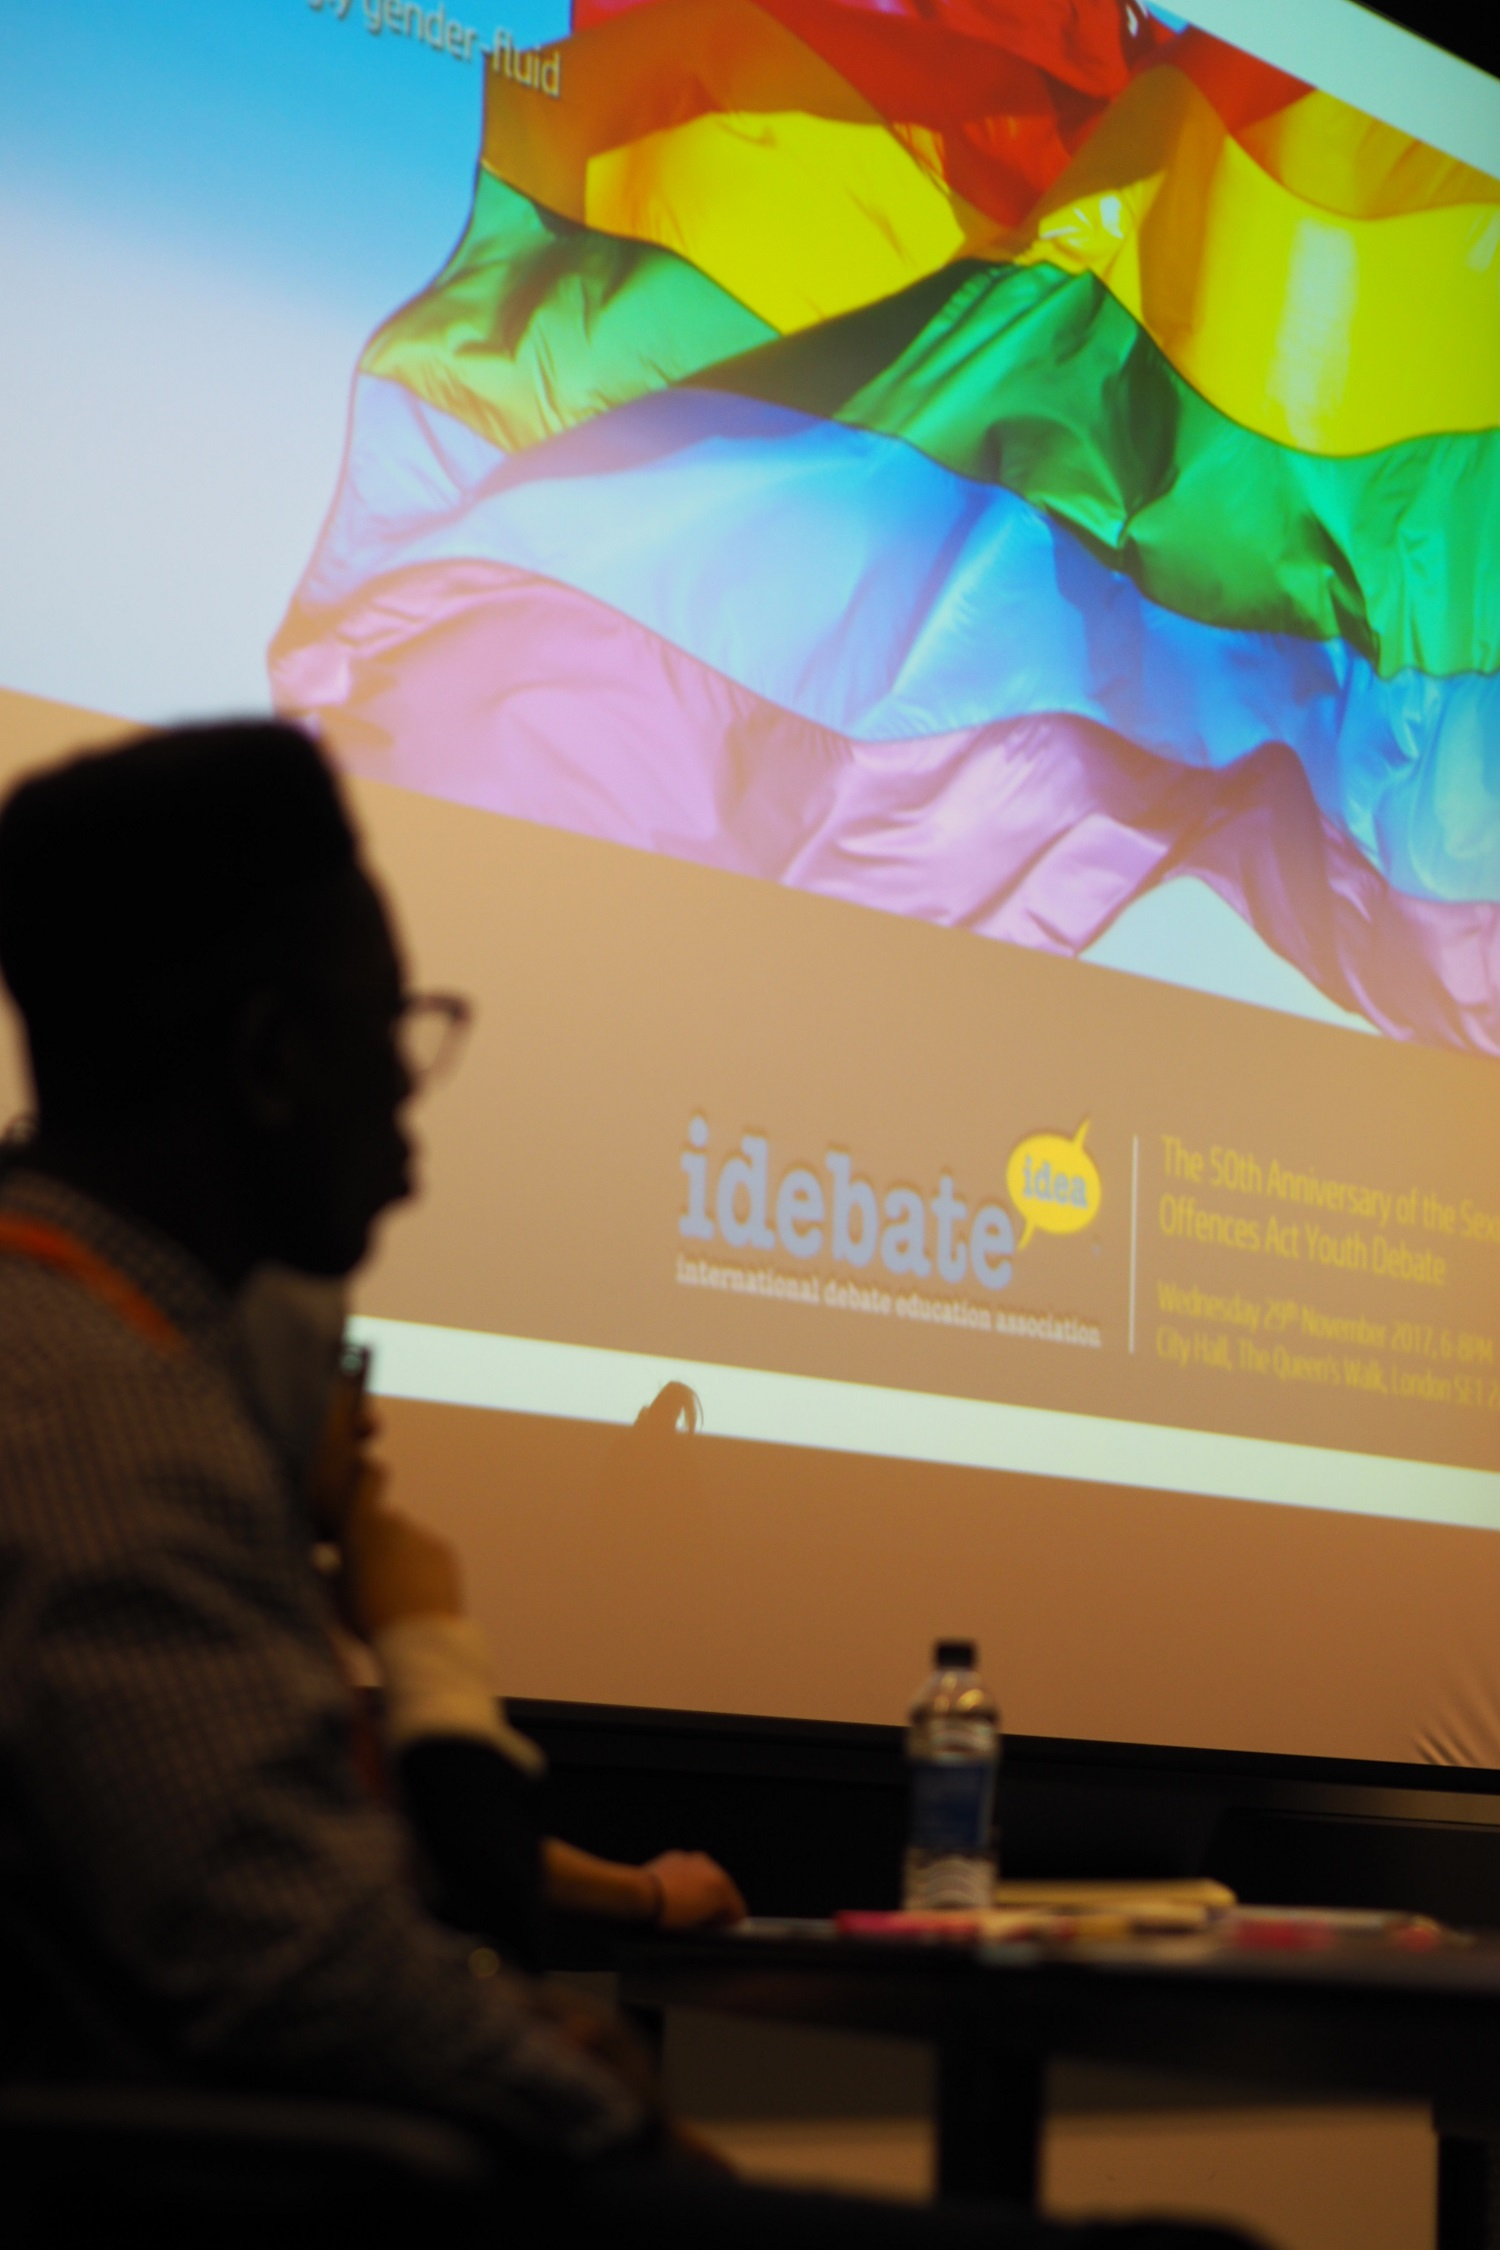 LGBT labels debate